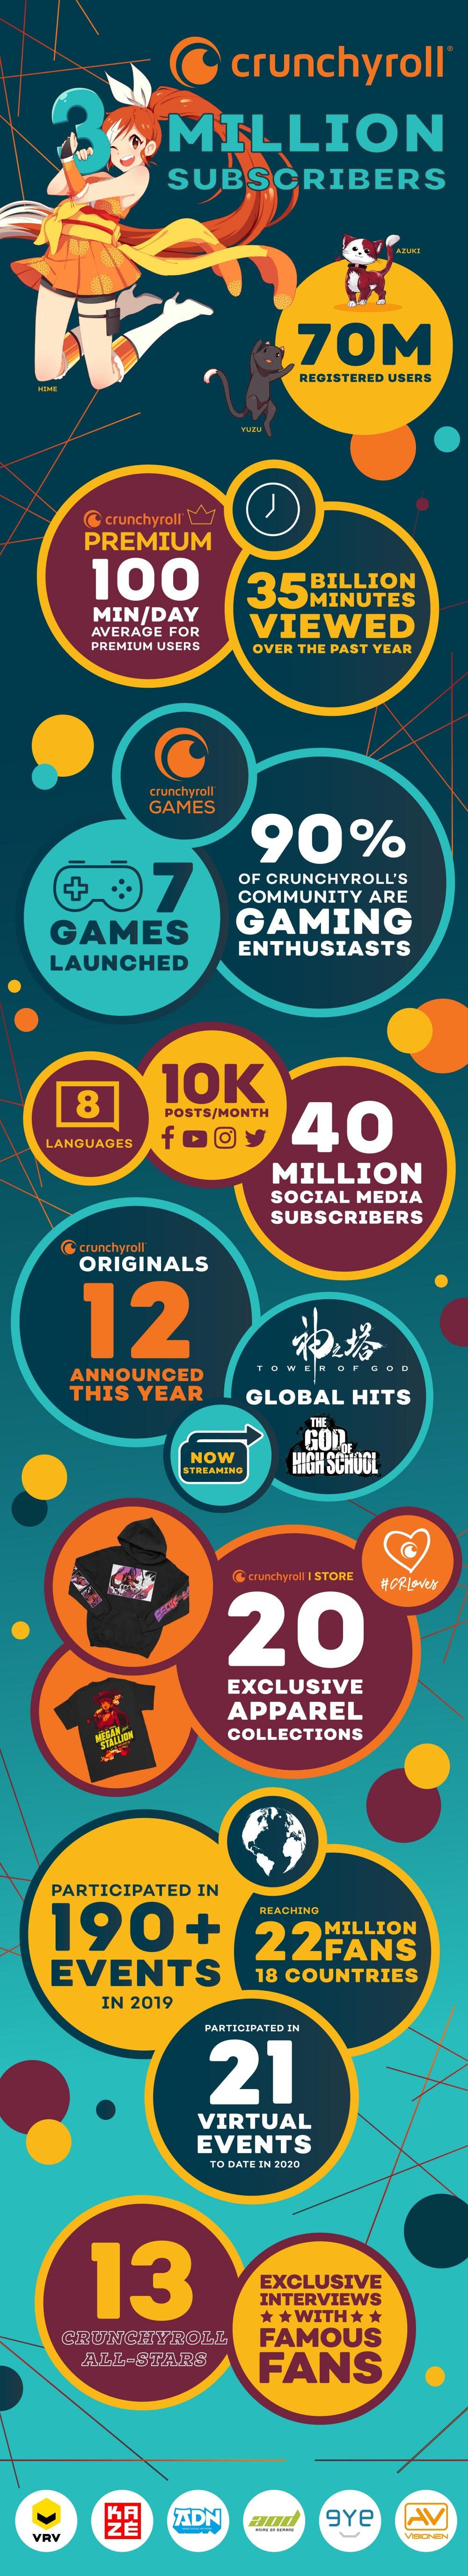 Crunchyroll Crosses Three Million Subscribers Infographic